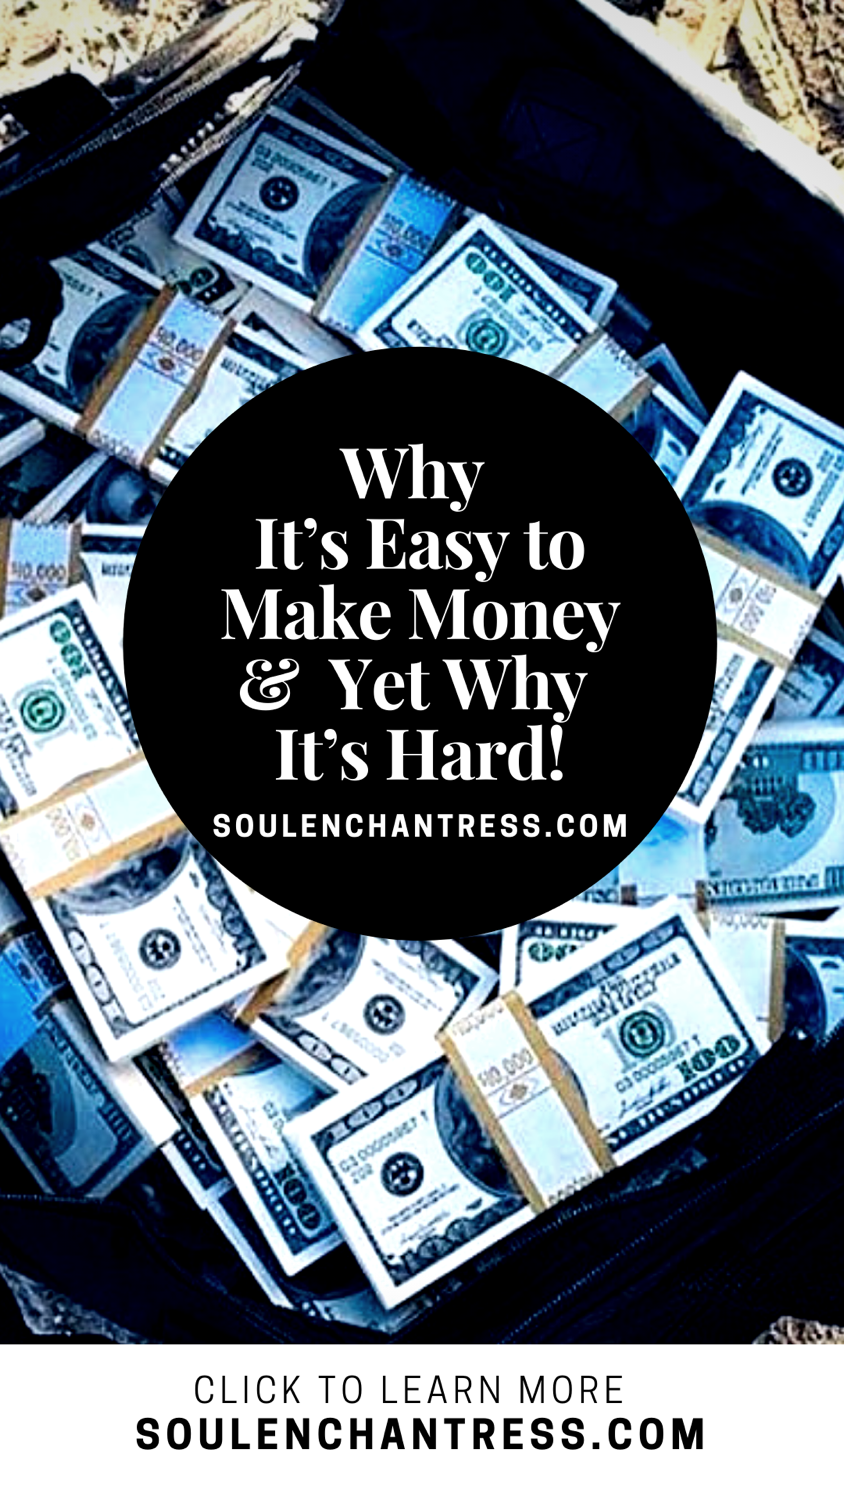 soul enchantress, why its easy to make money, how to make money traveling, money energy